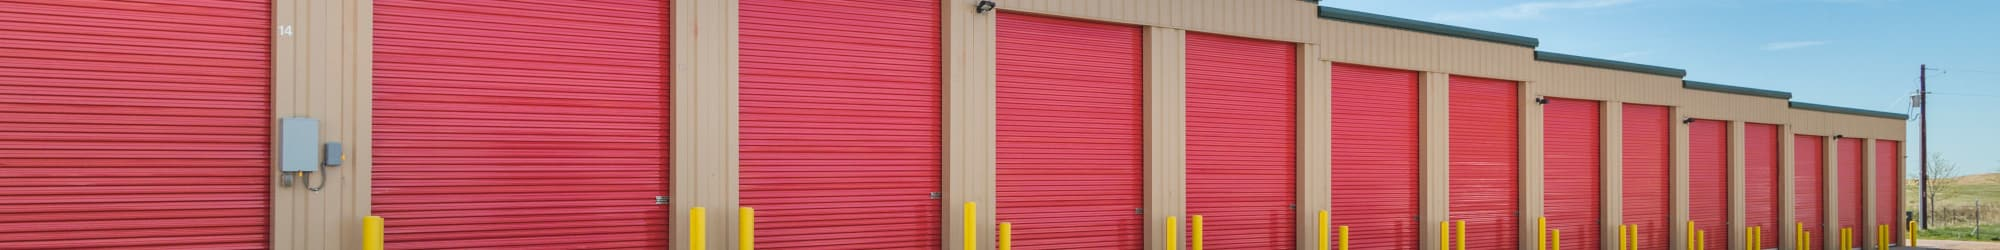 Office & Access Hours at Smart Space Self Storage - Stetson Hills in Colorado Springs, Colorado